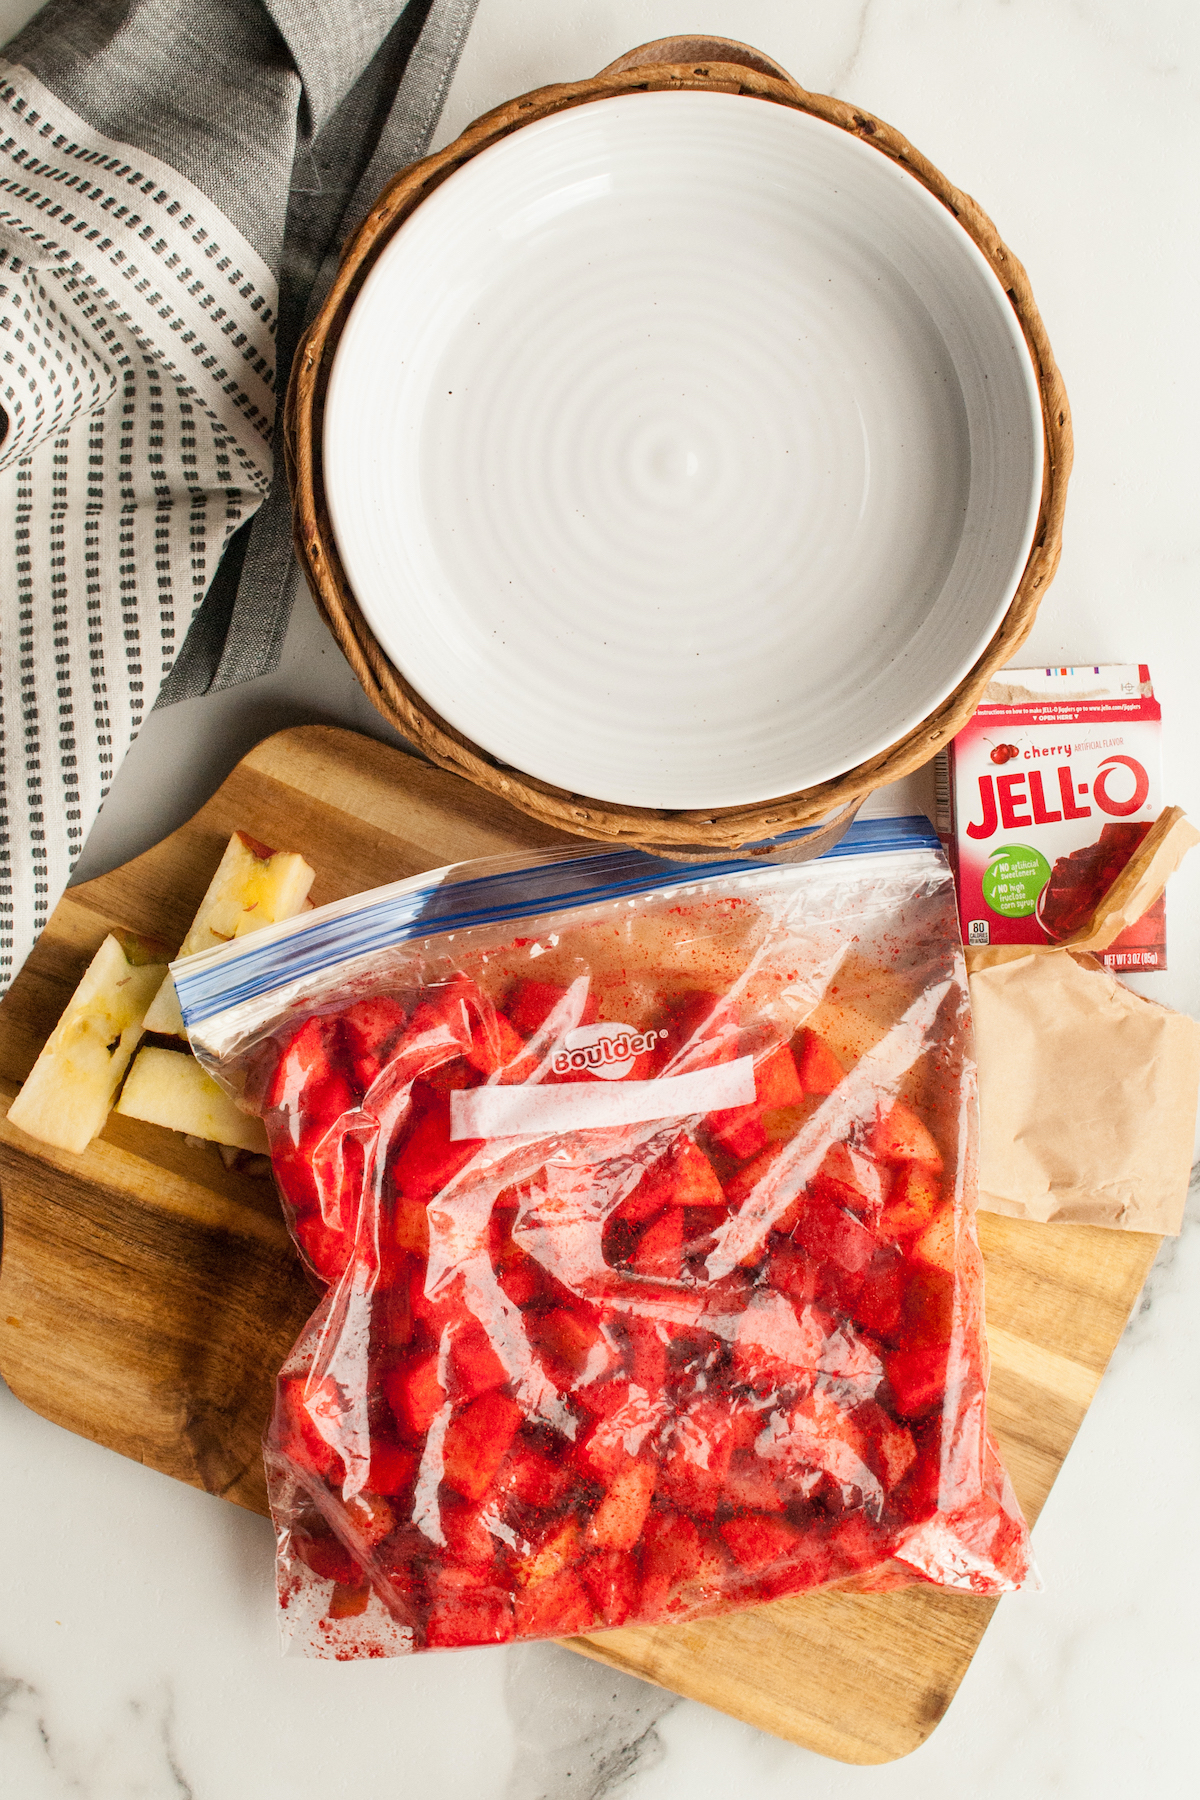 Overhead view of chopped apples that have been put in a ziploc bag and covered with red cherry jello powder